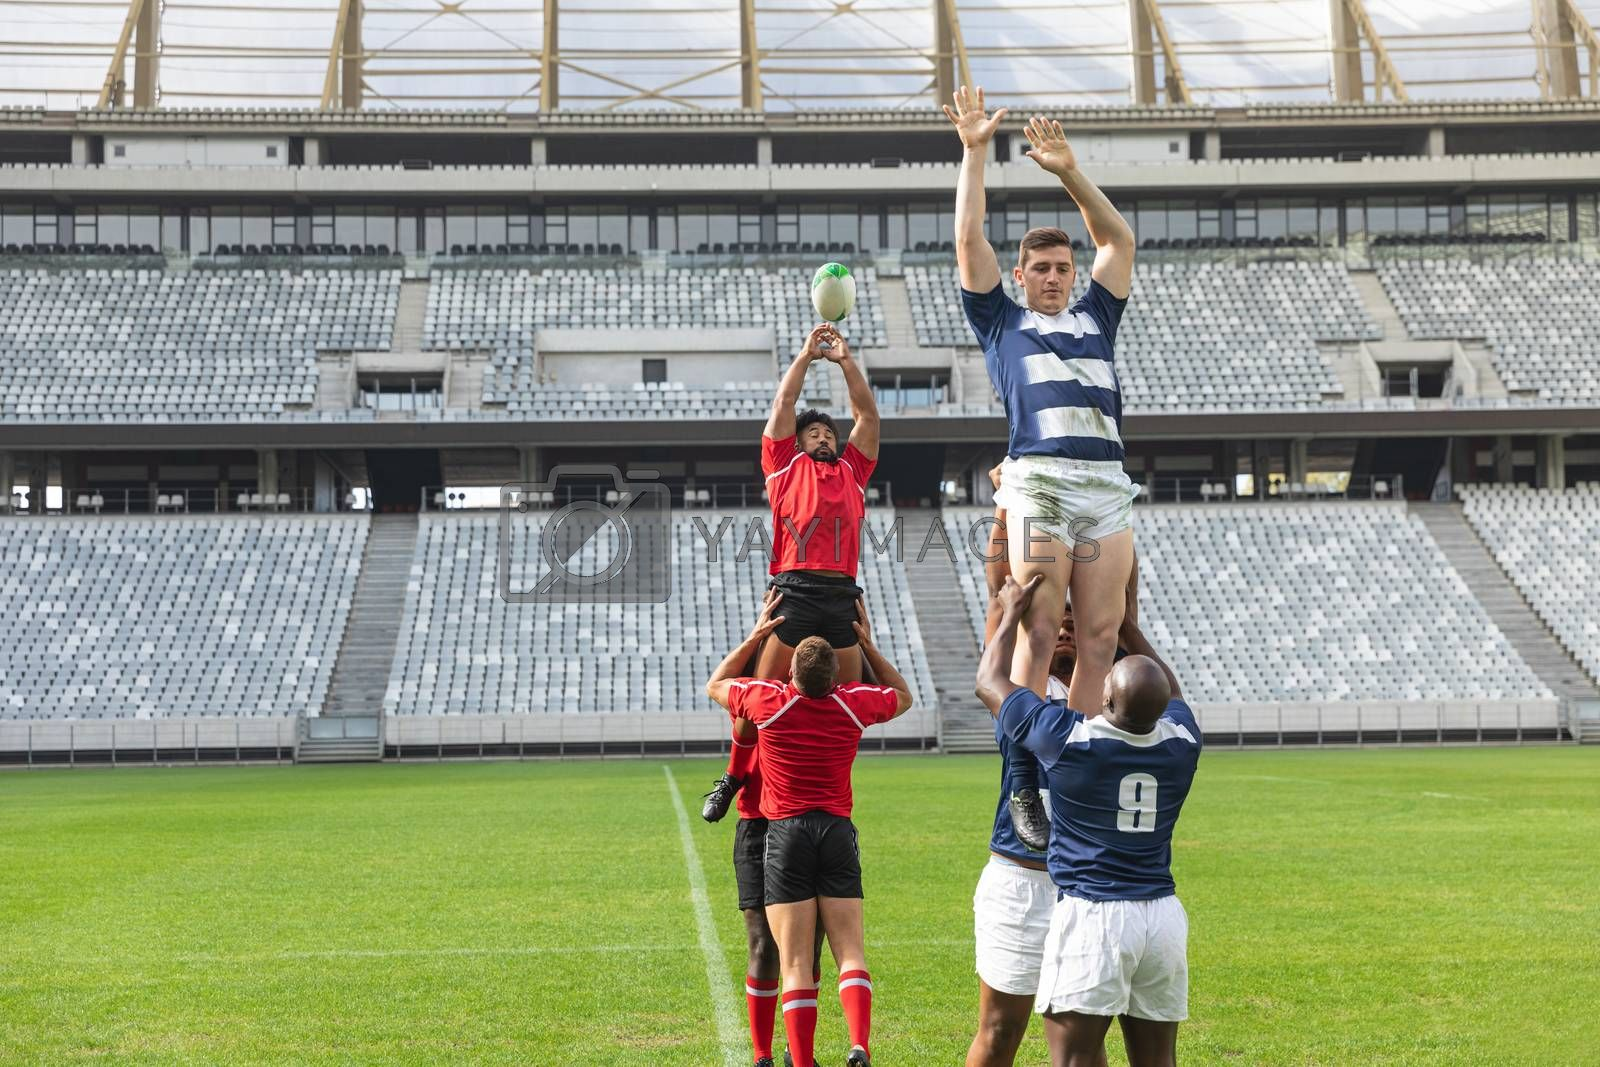 Front view of group of diverse male rugby players playing rugby match in stadium. African American player and Caucasian player are trying to catch the ball in the air.